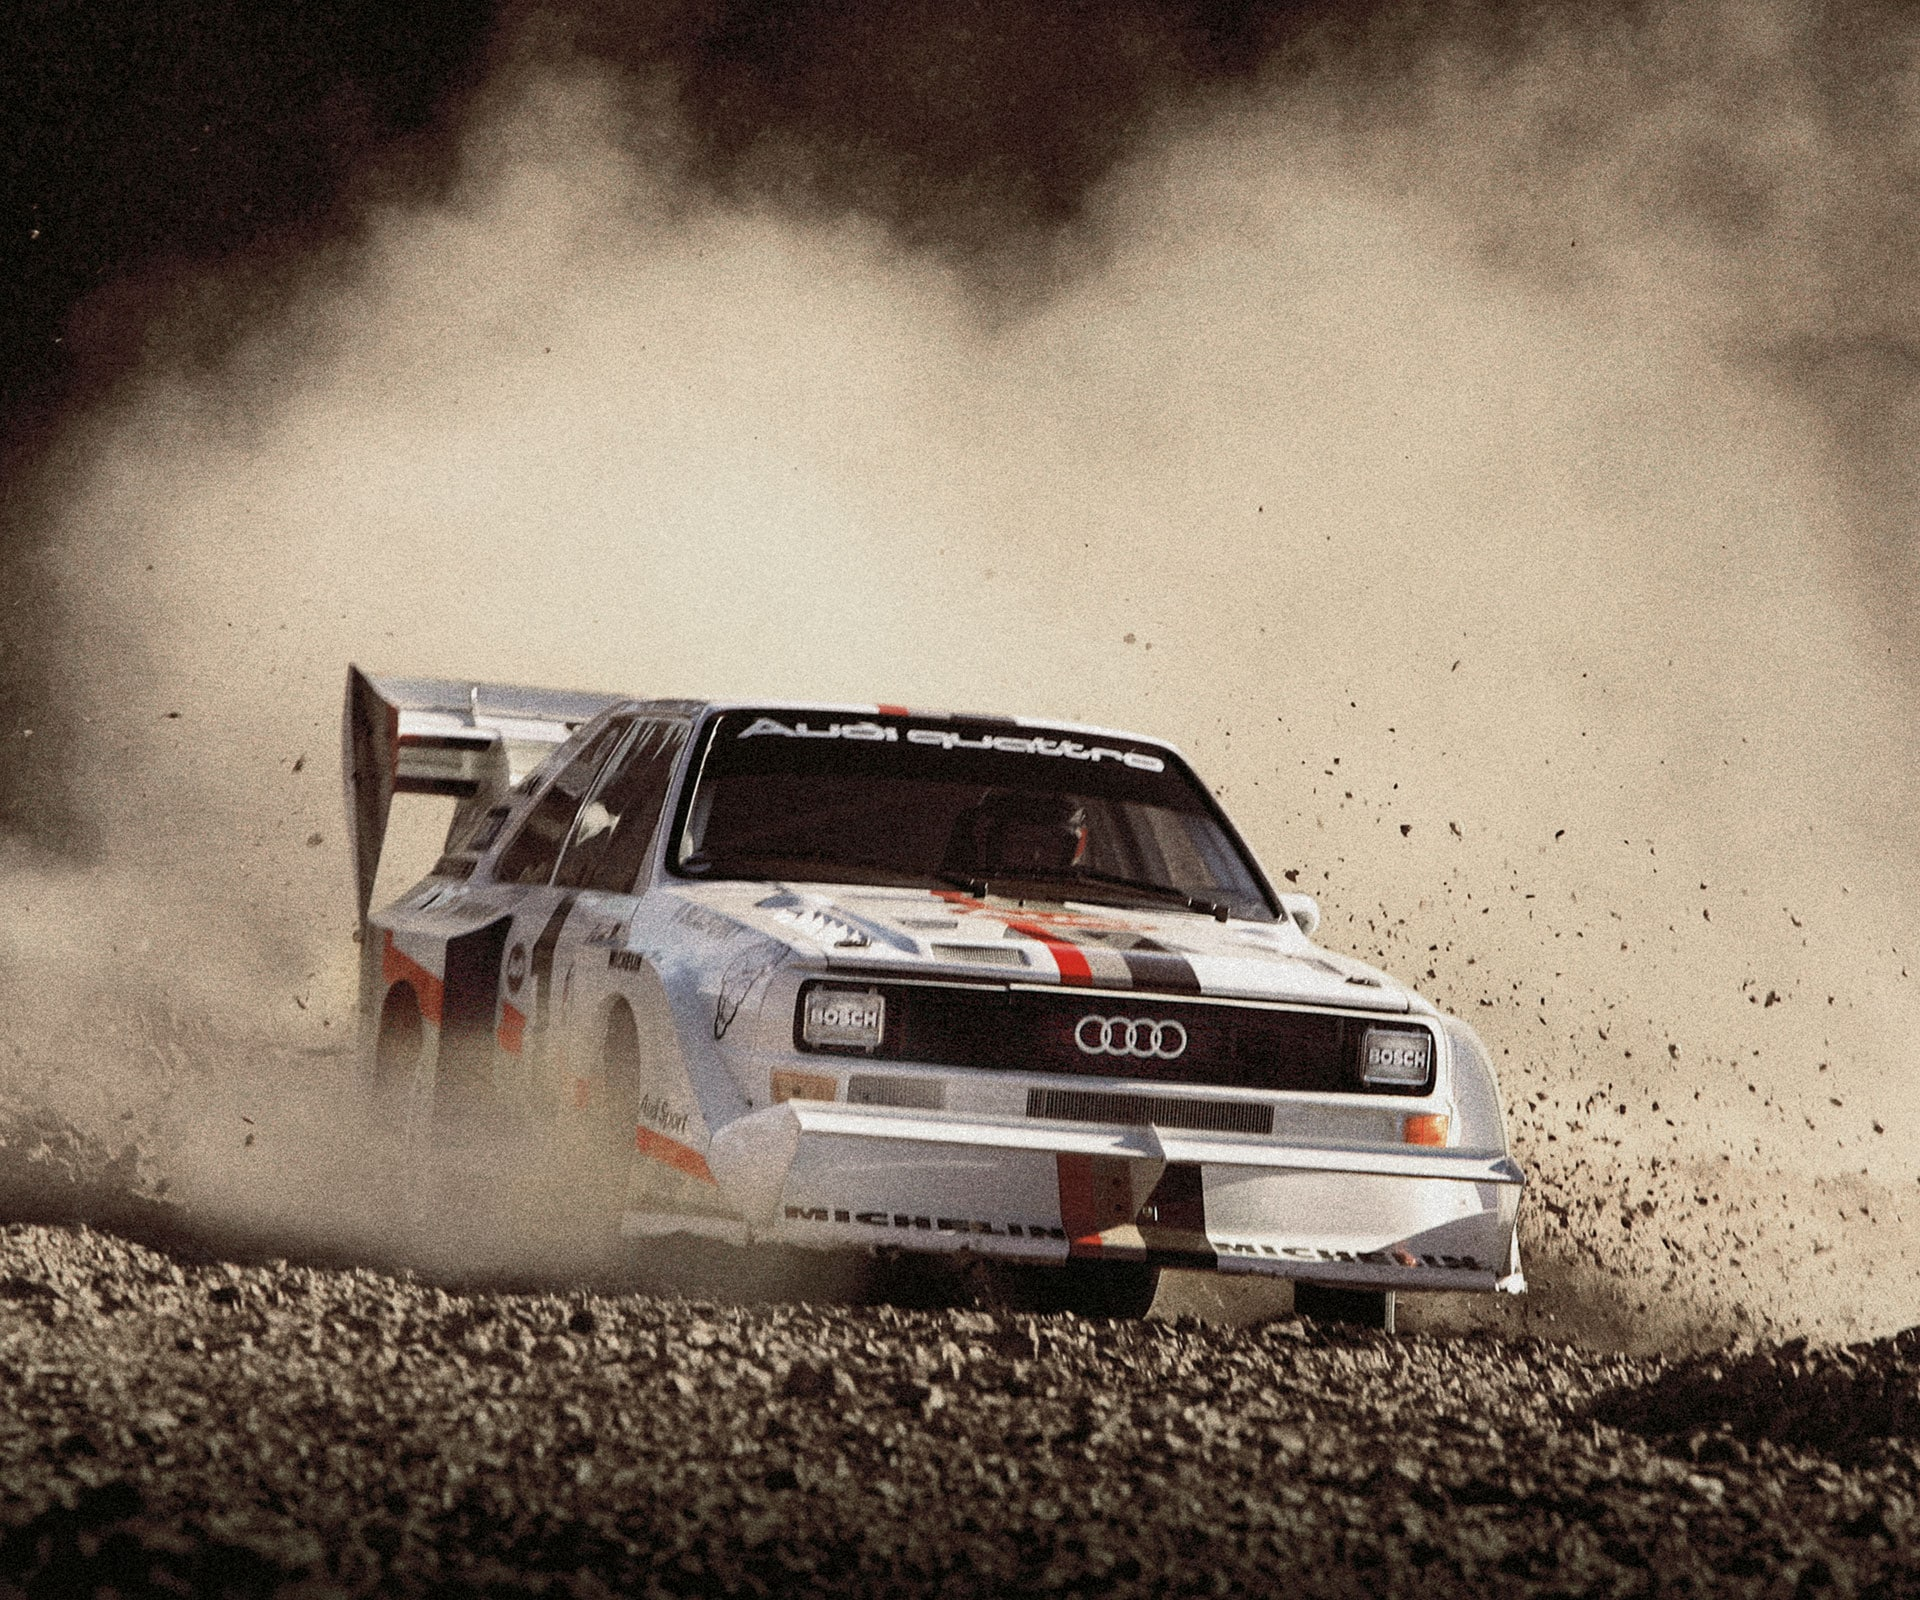 The original Audi quattro: Top performance right from the start.